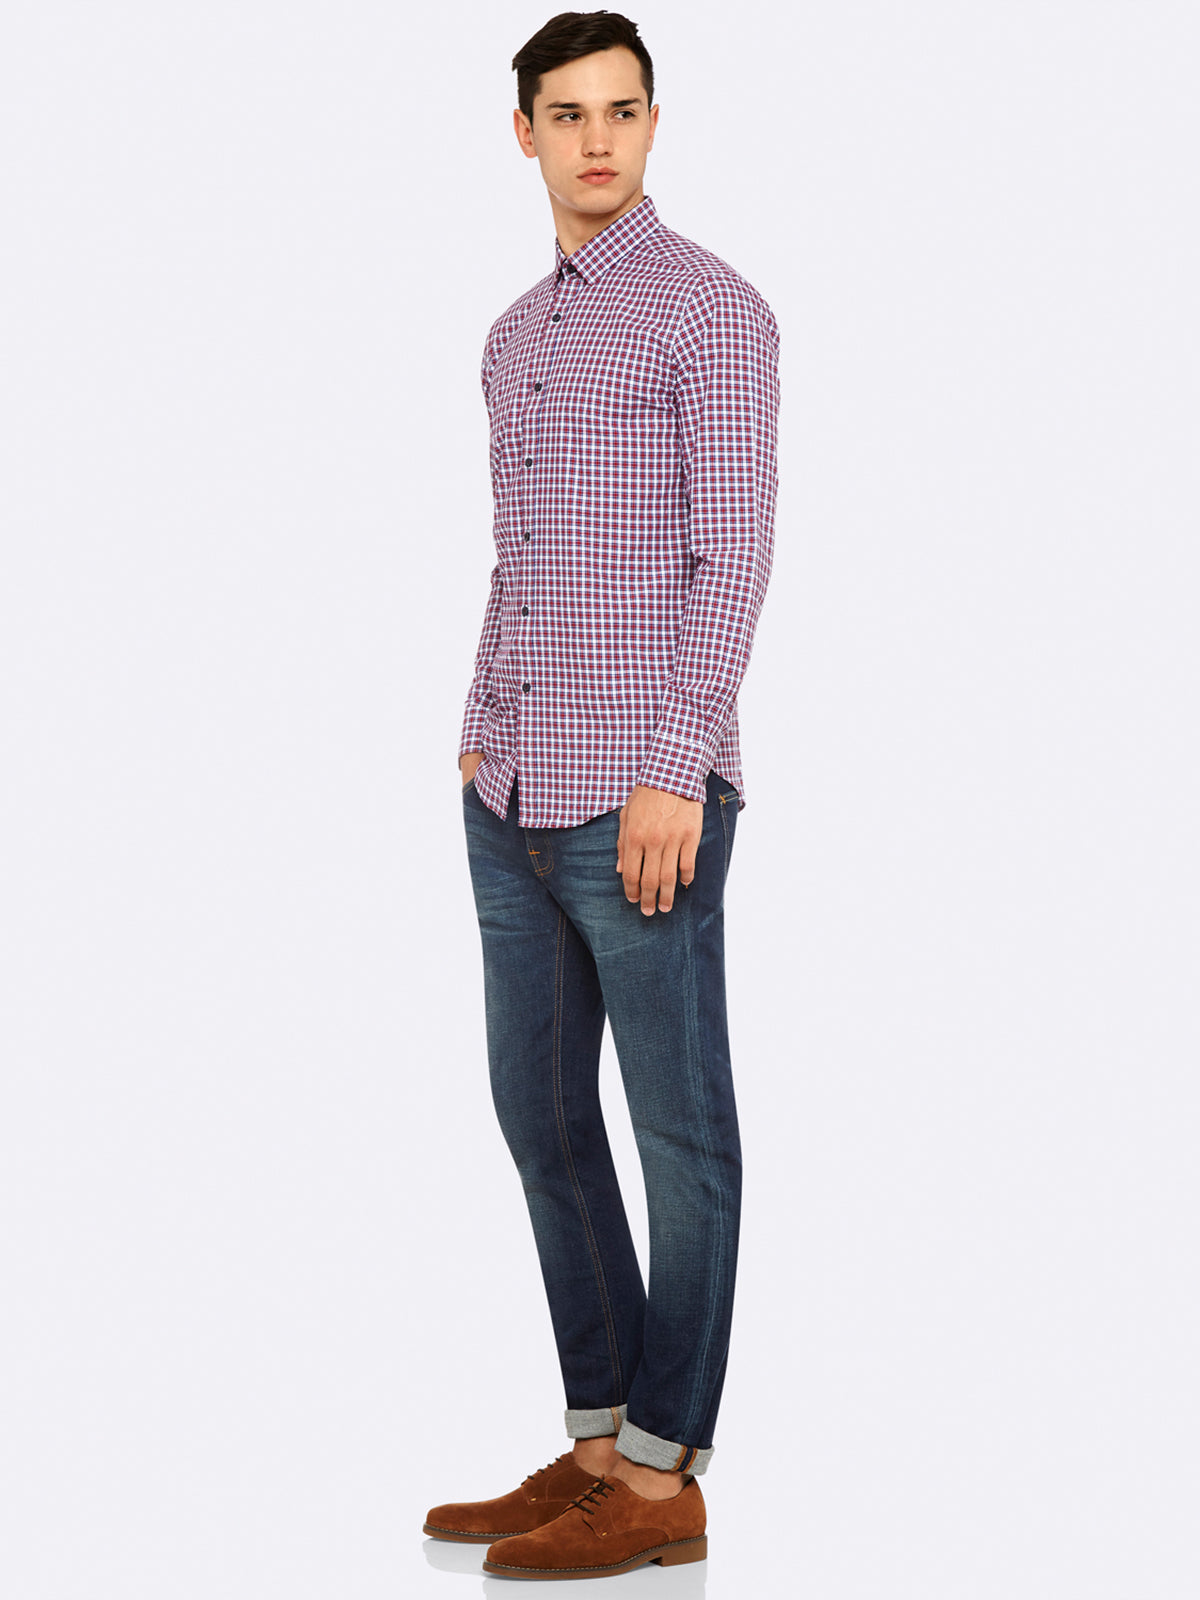 KENTON CHECK SHIRT BLU/MULBERRY